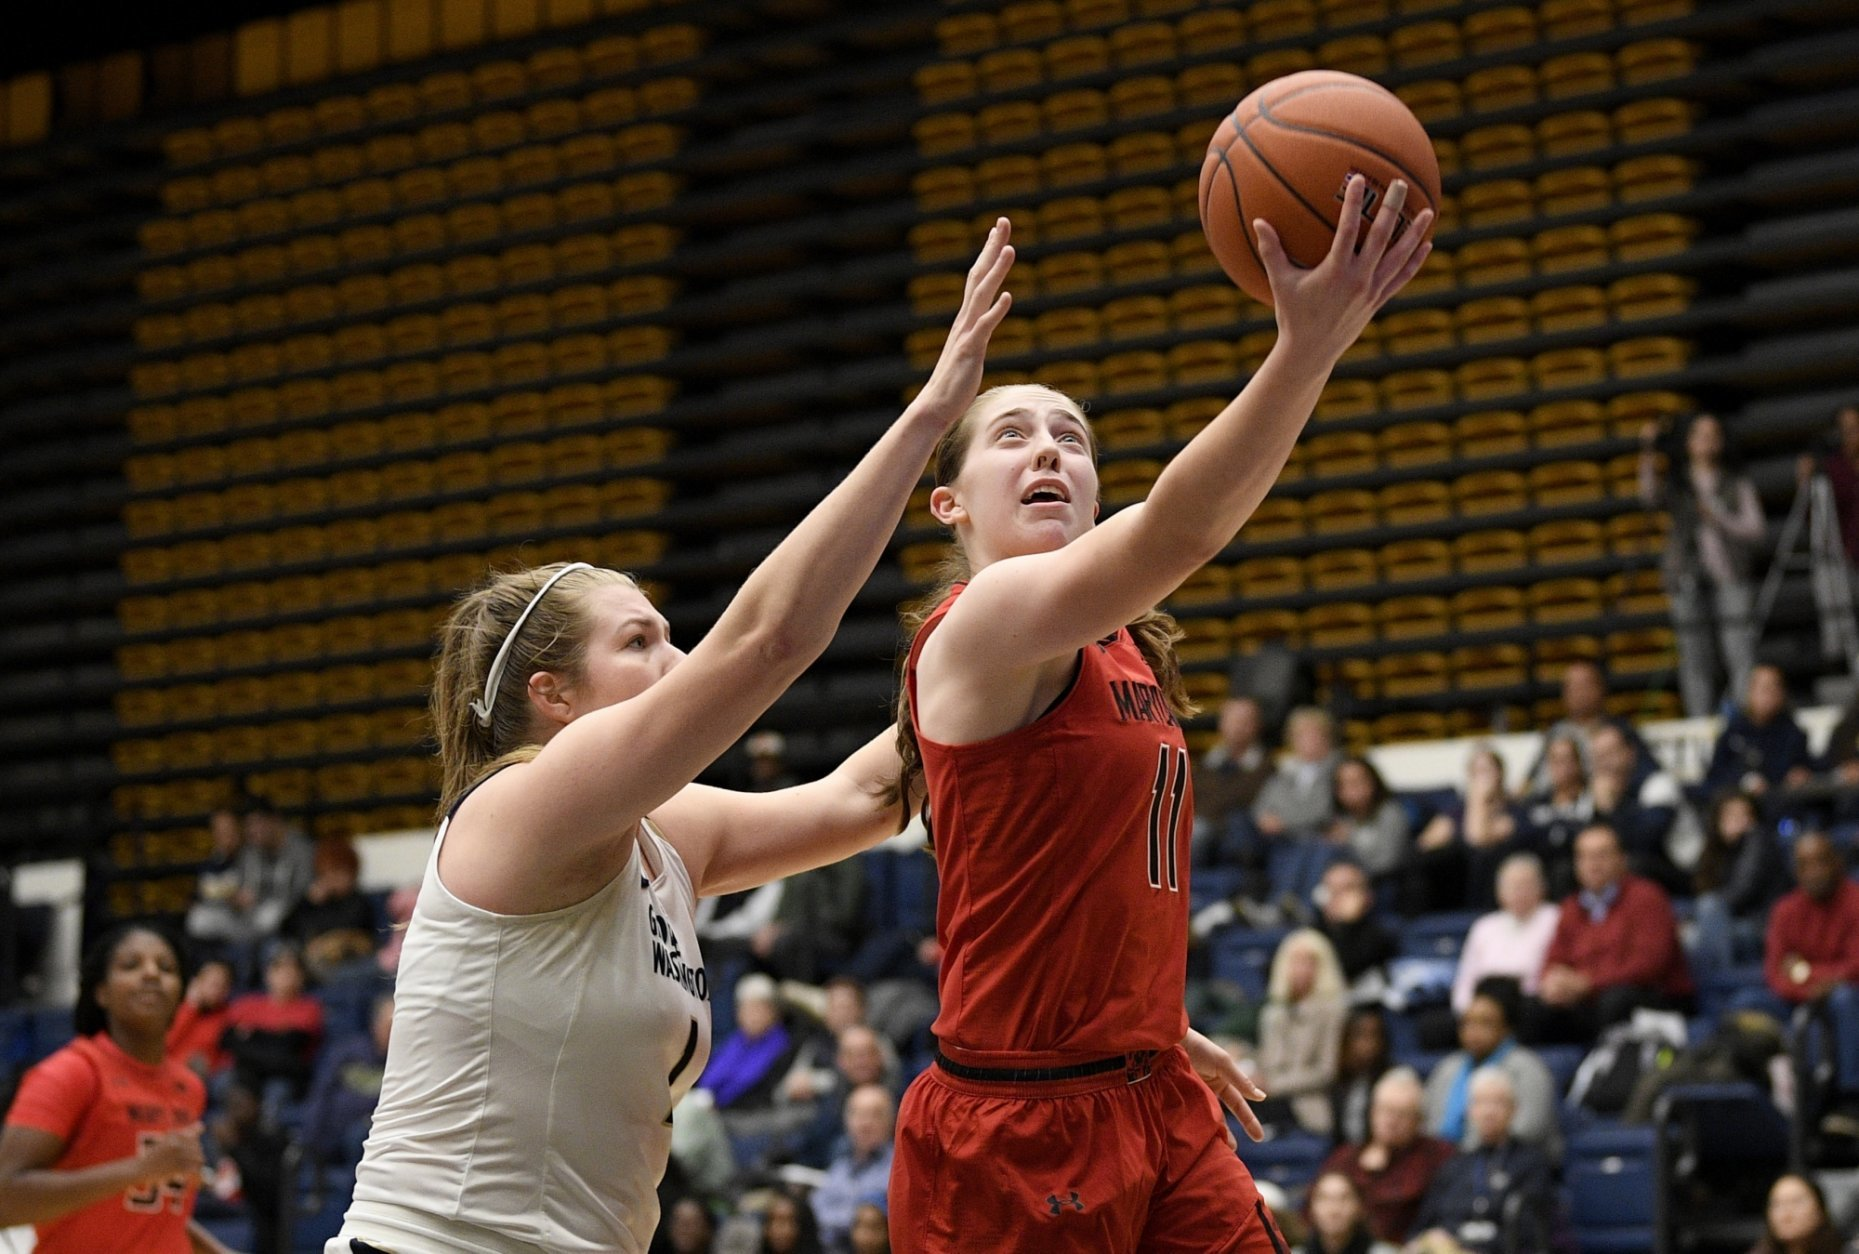 Maryland guard Taylor Mikesell (11) goes to the basket past George Washington forward Kelsi Mahoney, left, during the second half of an NCAA college basketball game, Wednesday, Nov. 14, 2018, in Washington. Maryland won 69-30. (AP Photo/Nick Wass)